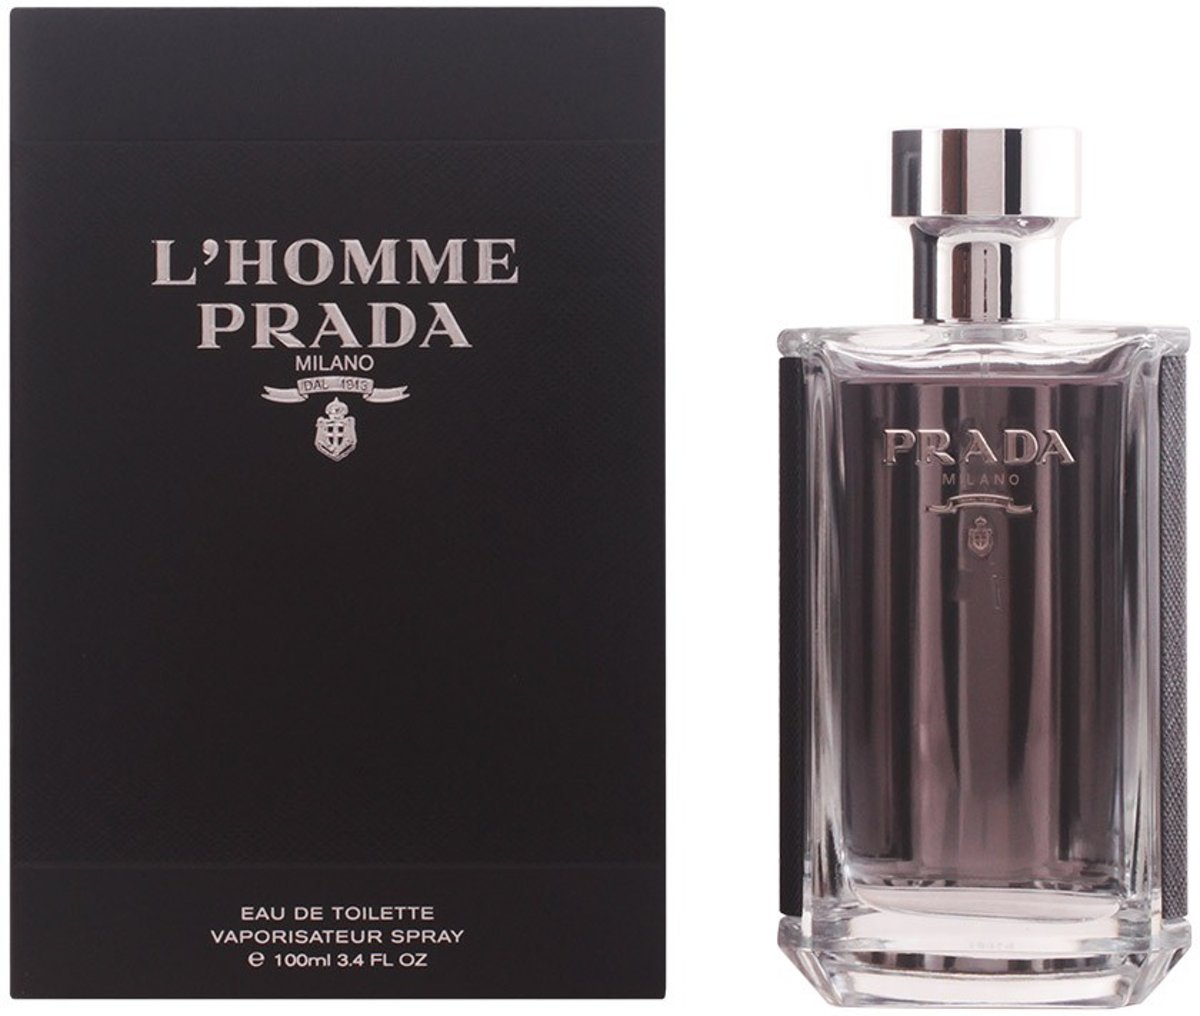 MULTI BUNDEL 2 stuks LHOMME PRADA Eau de Toilette Spray 100 ml